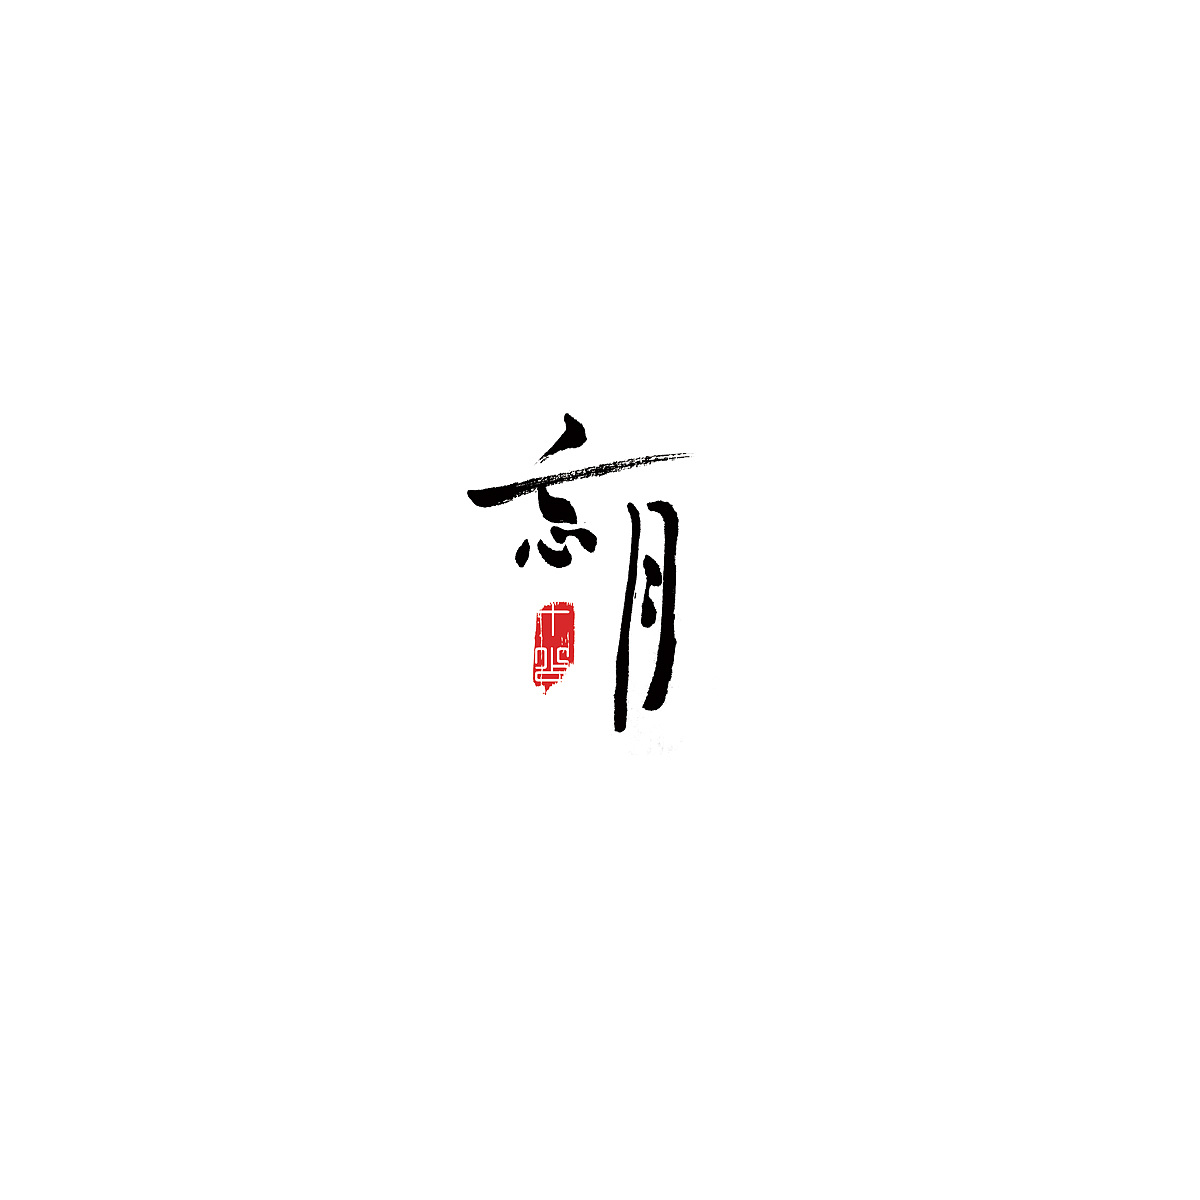 25P Chinese traditional calligraphy brush calligraphy font style appreciation #.538